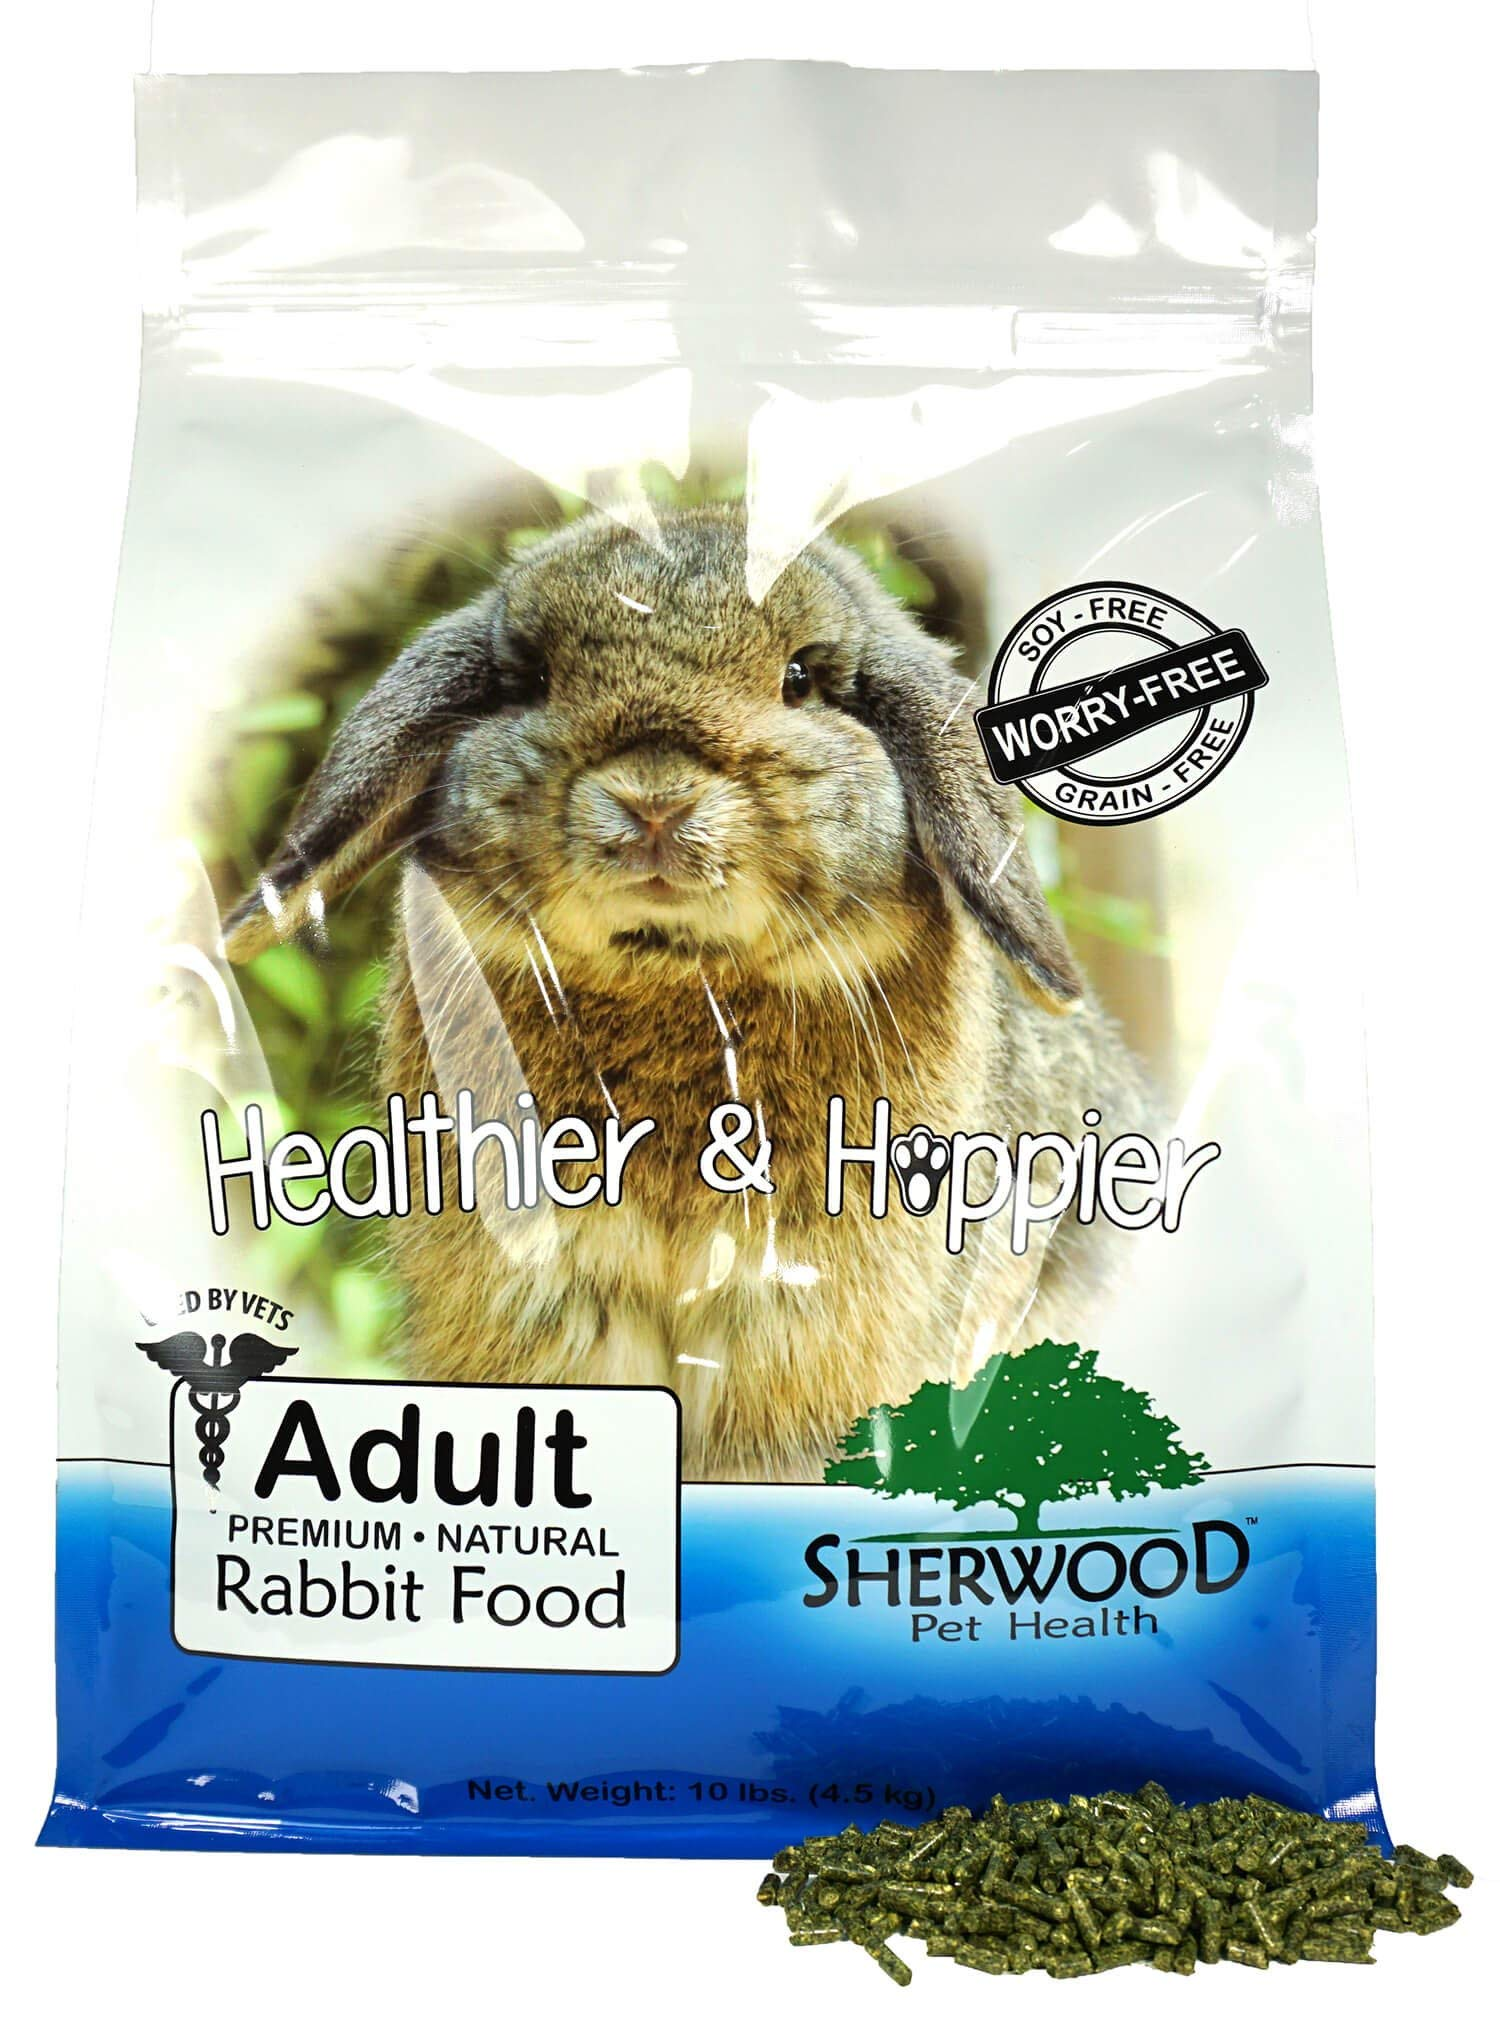 Sherwood Pet Health Rabbit Food-Adult, Timothy/Alfalfa Blend (Grain & Soy-Free) (Vet Used and Recommended) 10 lb. by Sherwood Pet Health